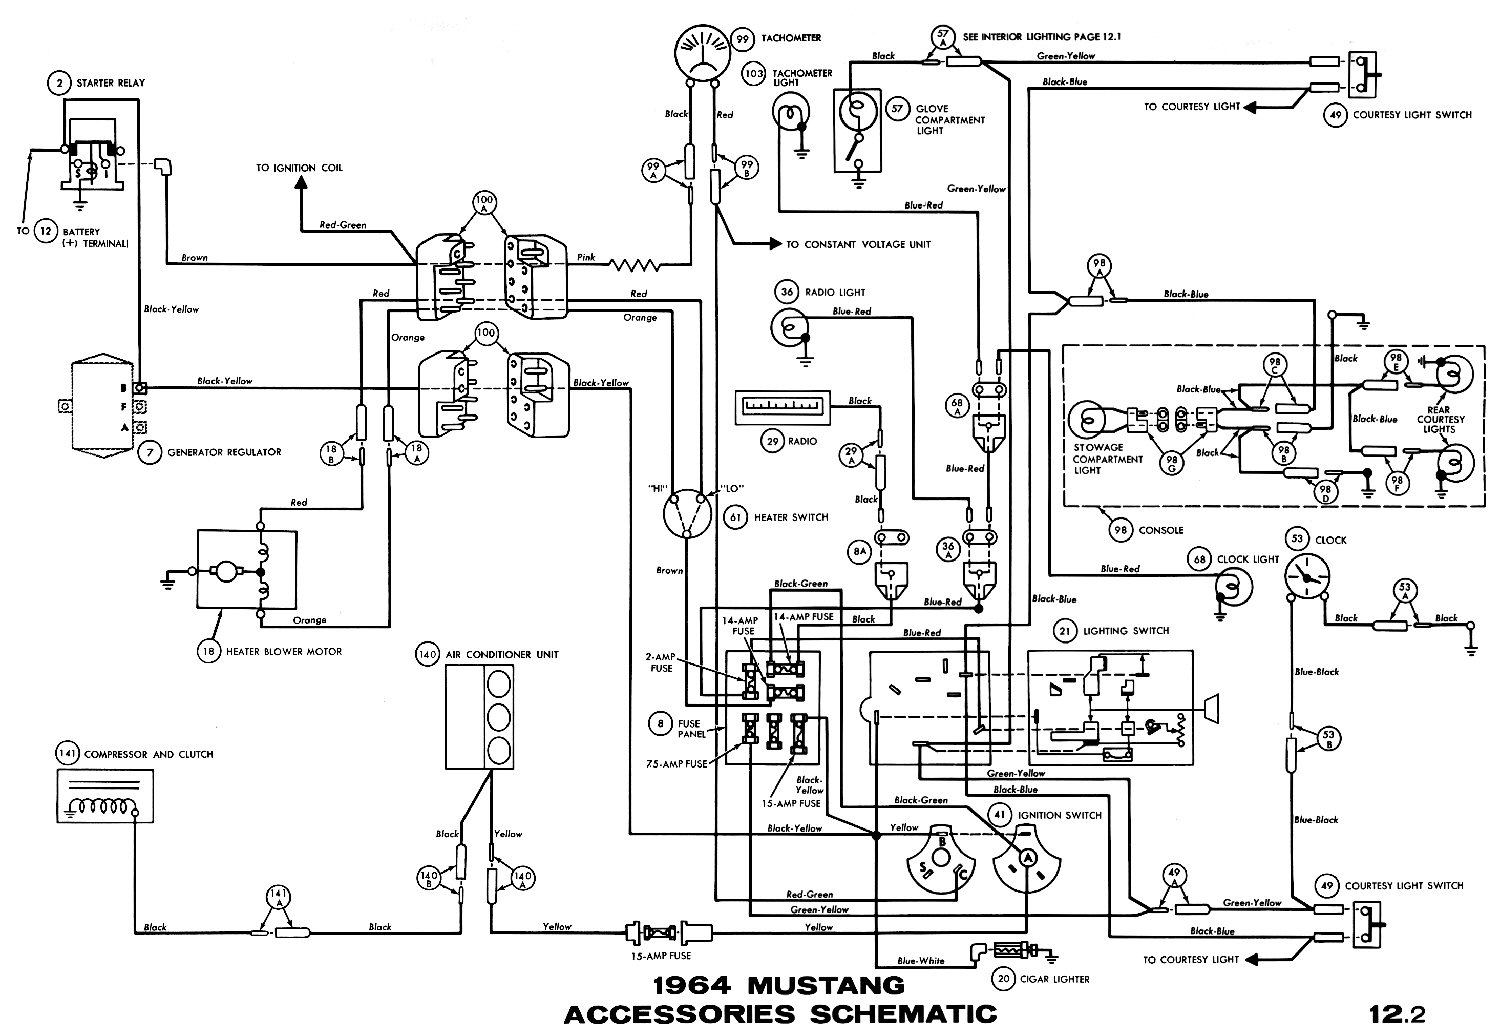 1964m 1964 mustang wiring diagrams average joe restoration 1970 ford f100 turn signal wiring diagram at mifinder.co